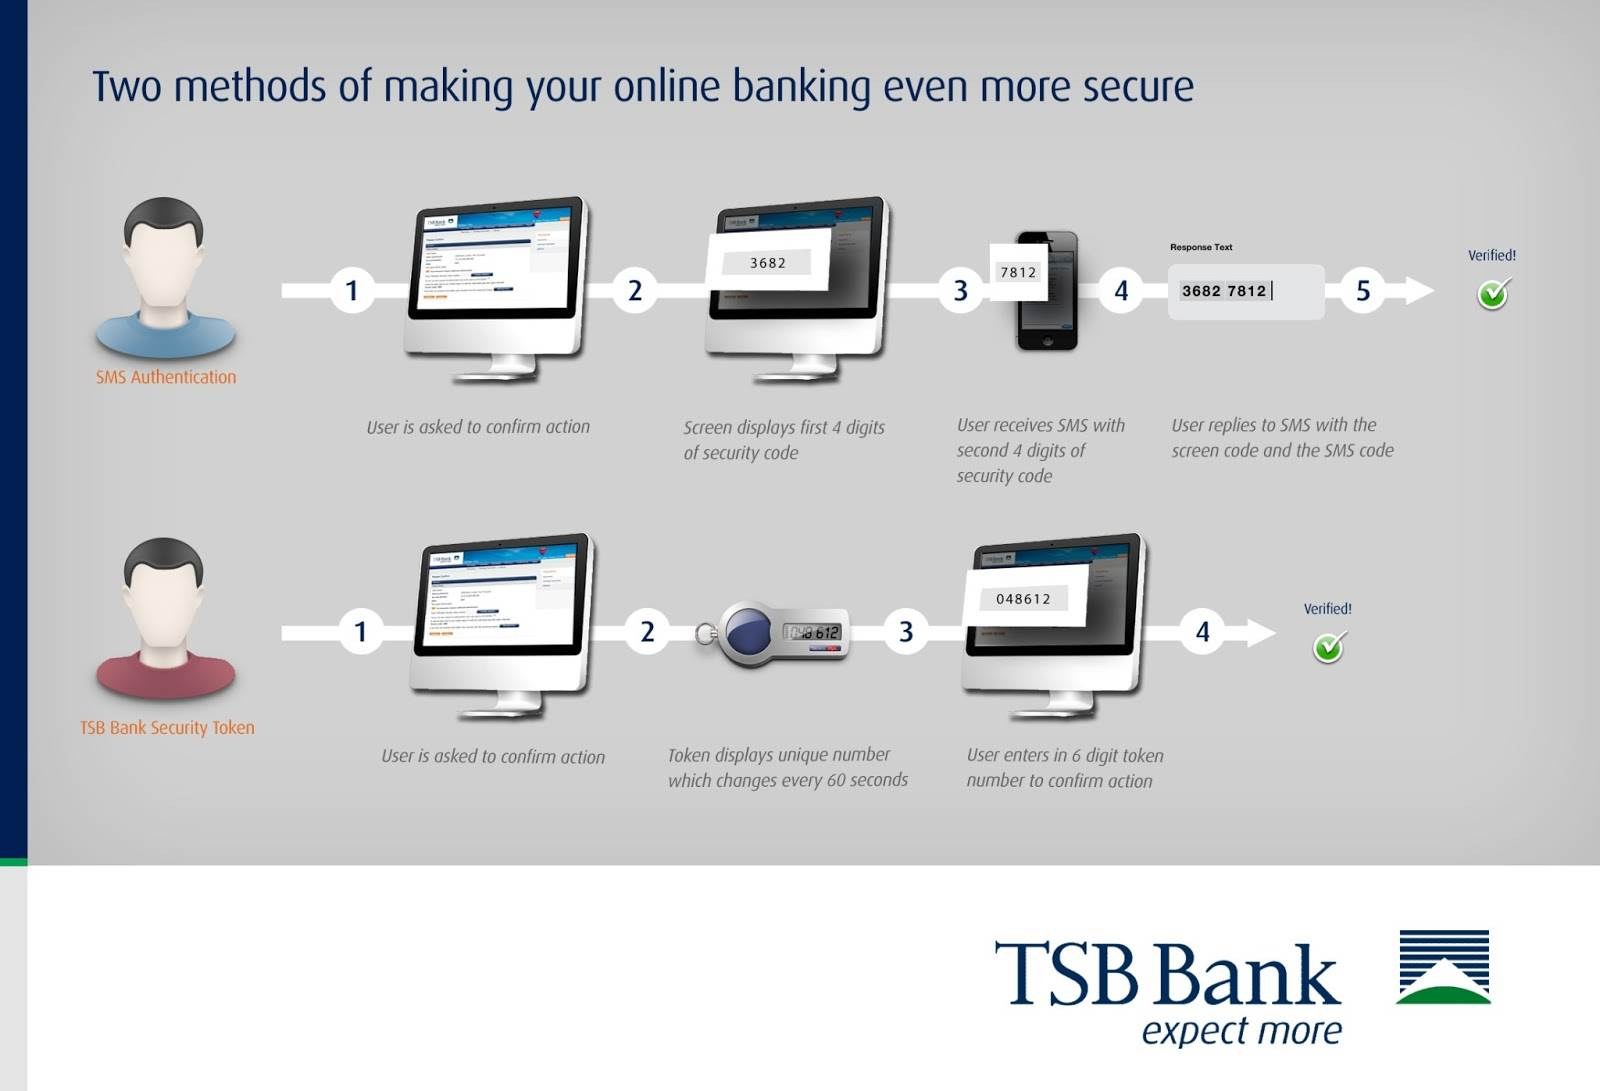 Image source: TSB Bank-TFA Security Diagram